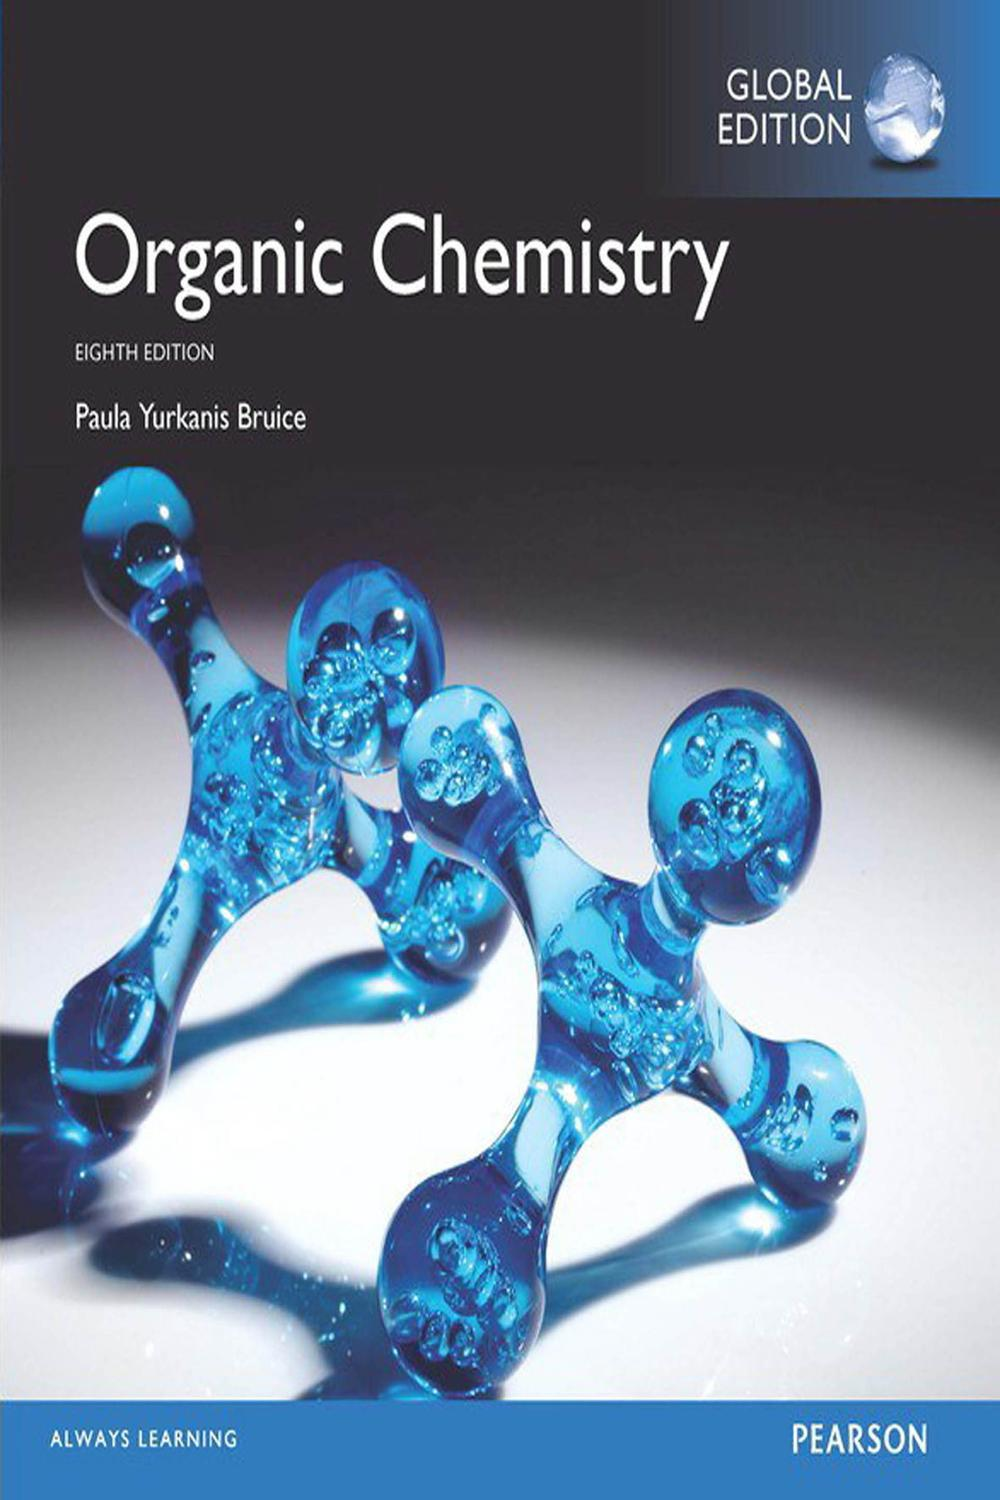 Organic Chemistry, Global Edition by Paula Yurkanis Bruice | Read